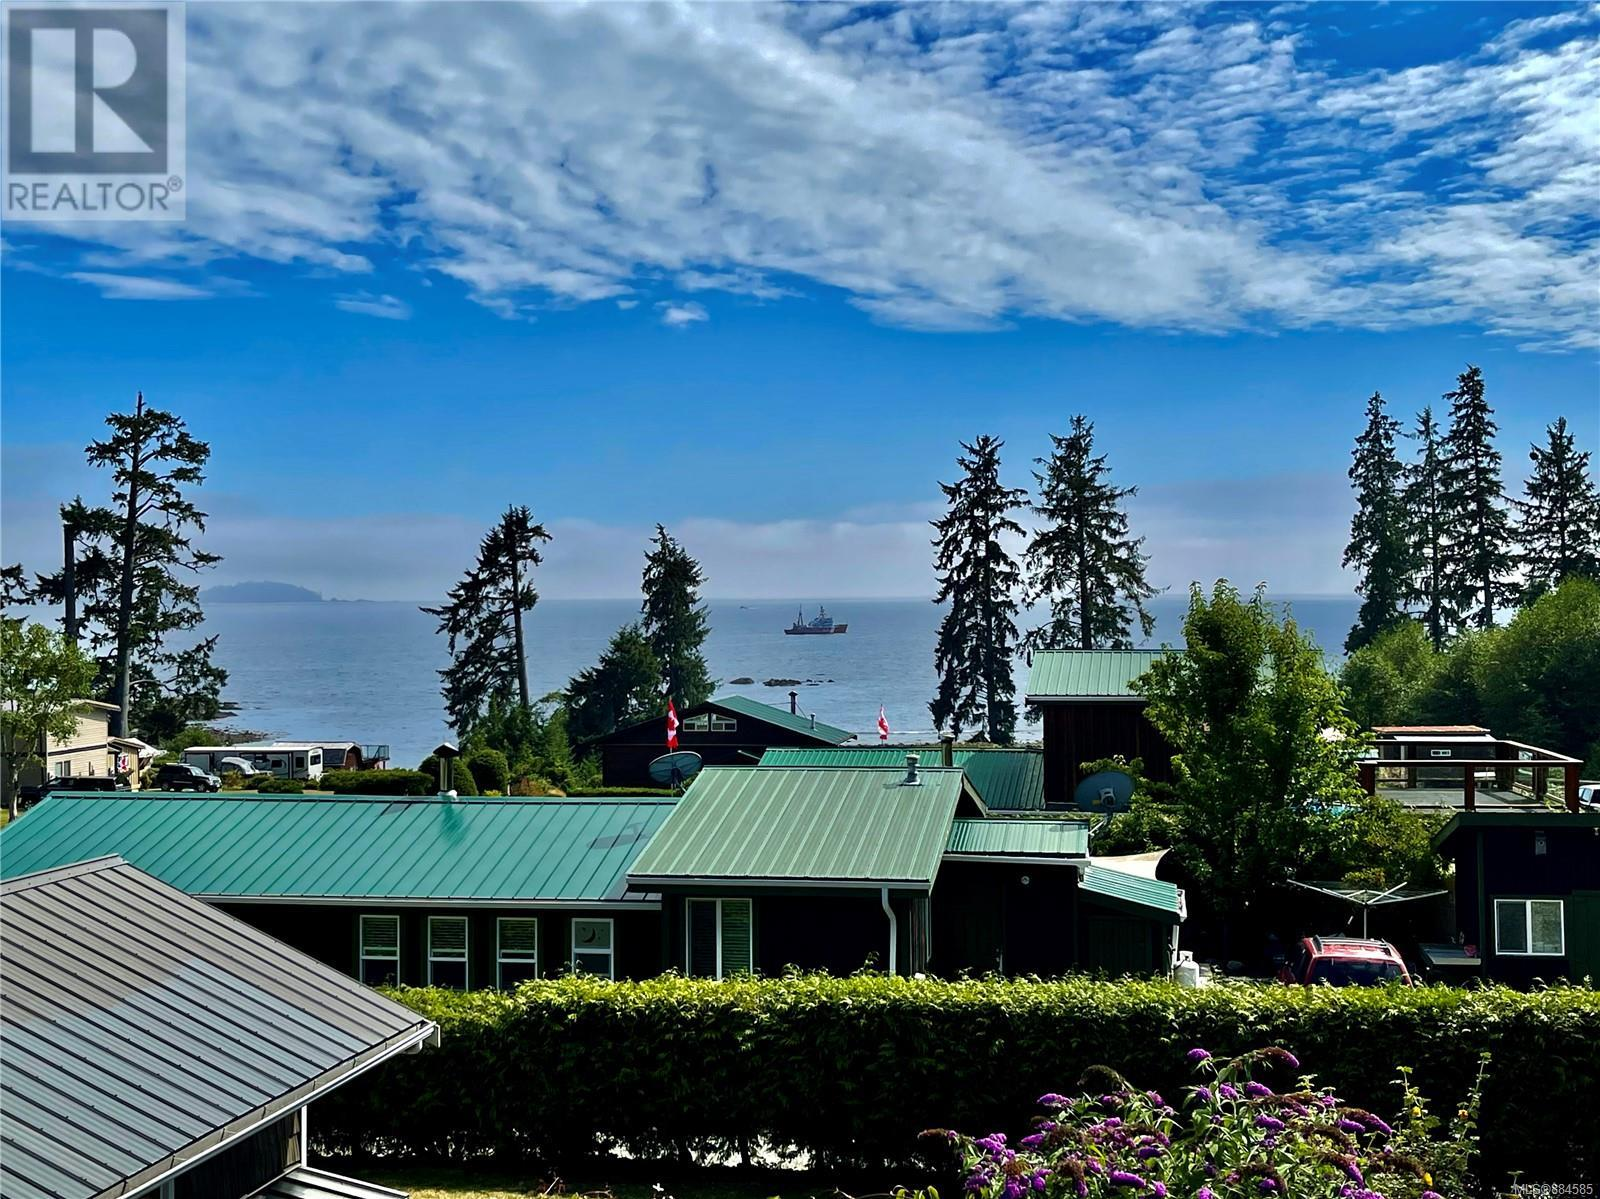 MLS® #884585 - Ucluelet House For sale Image #23